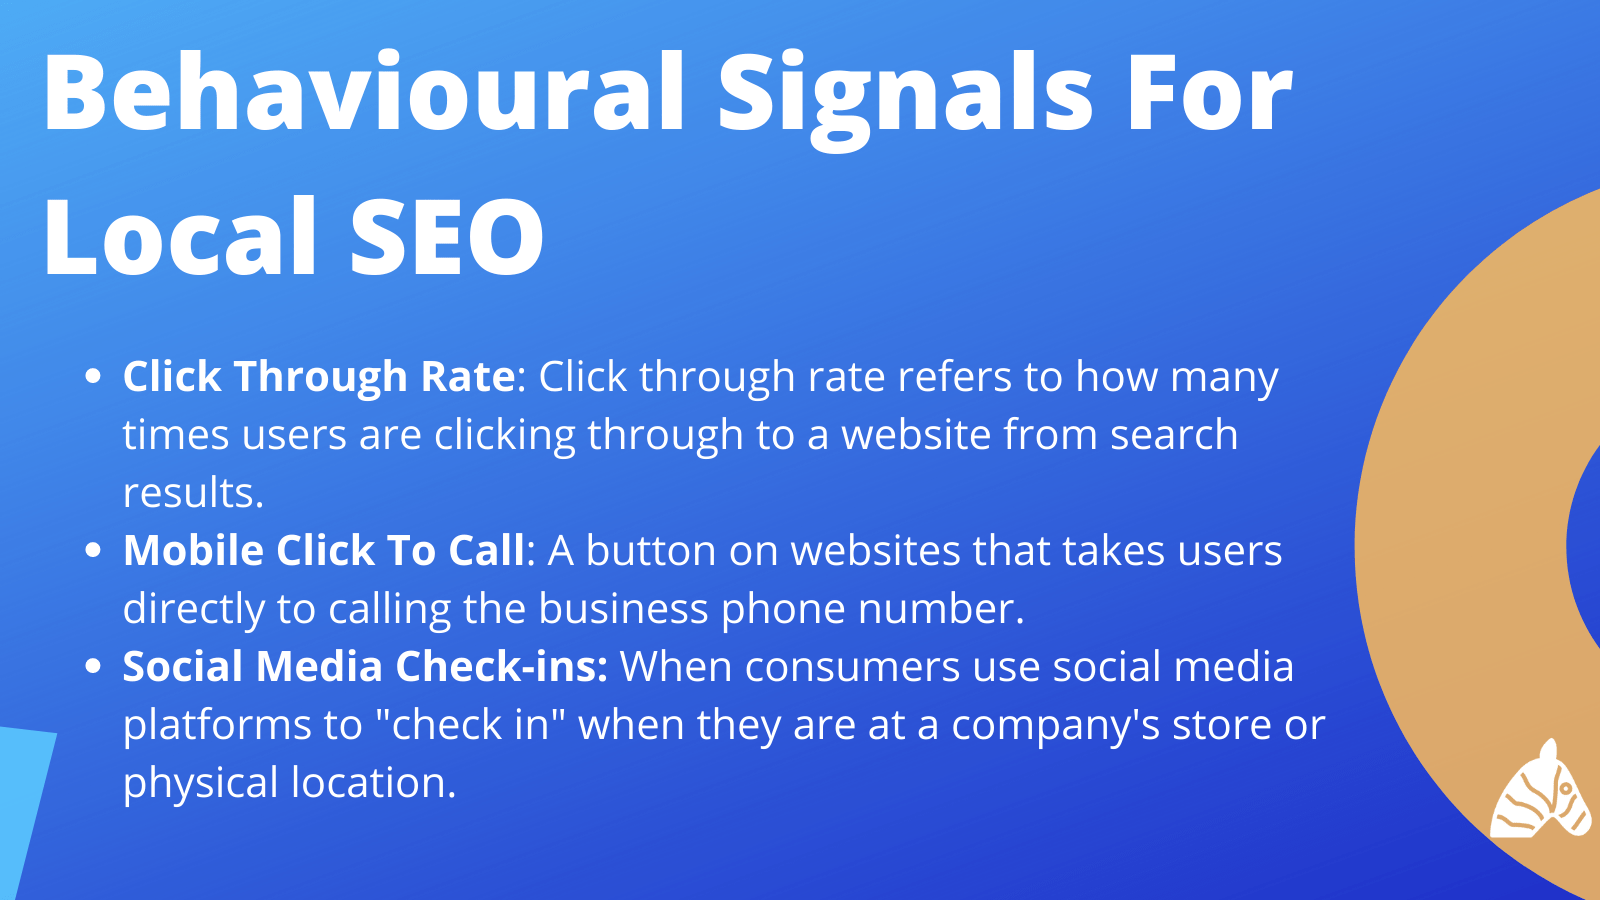 behavioural signals for local SEO